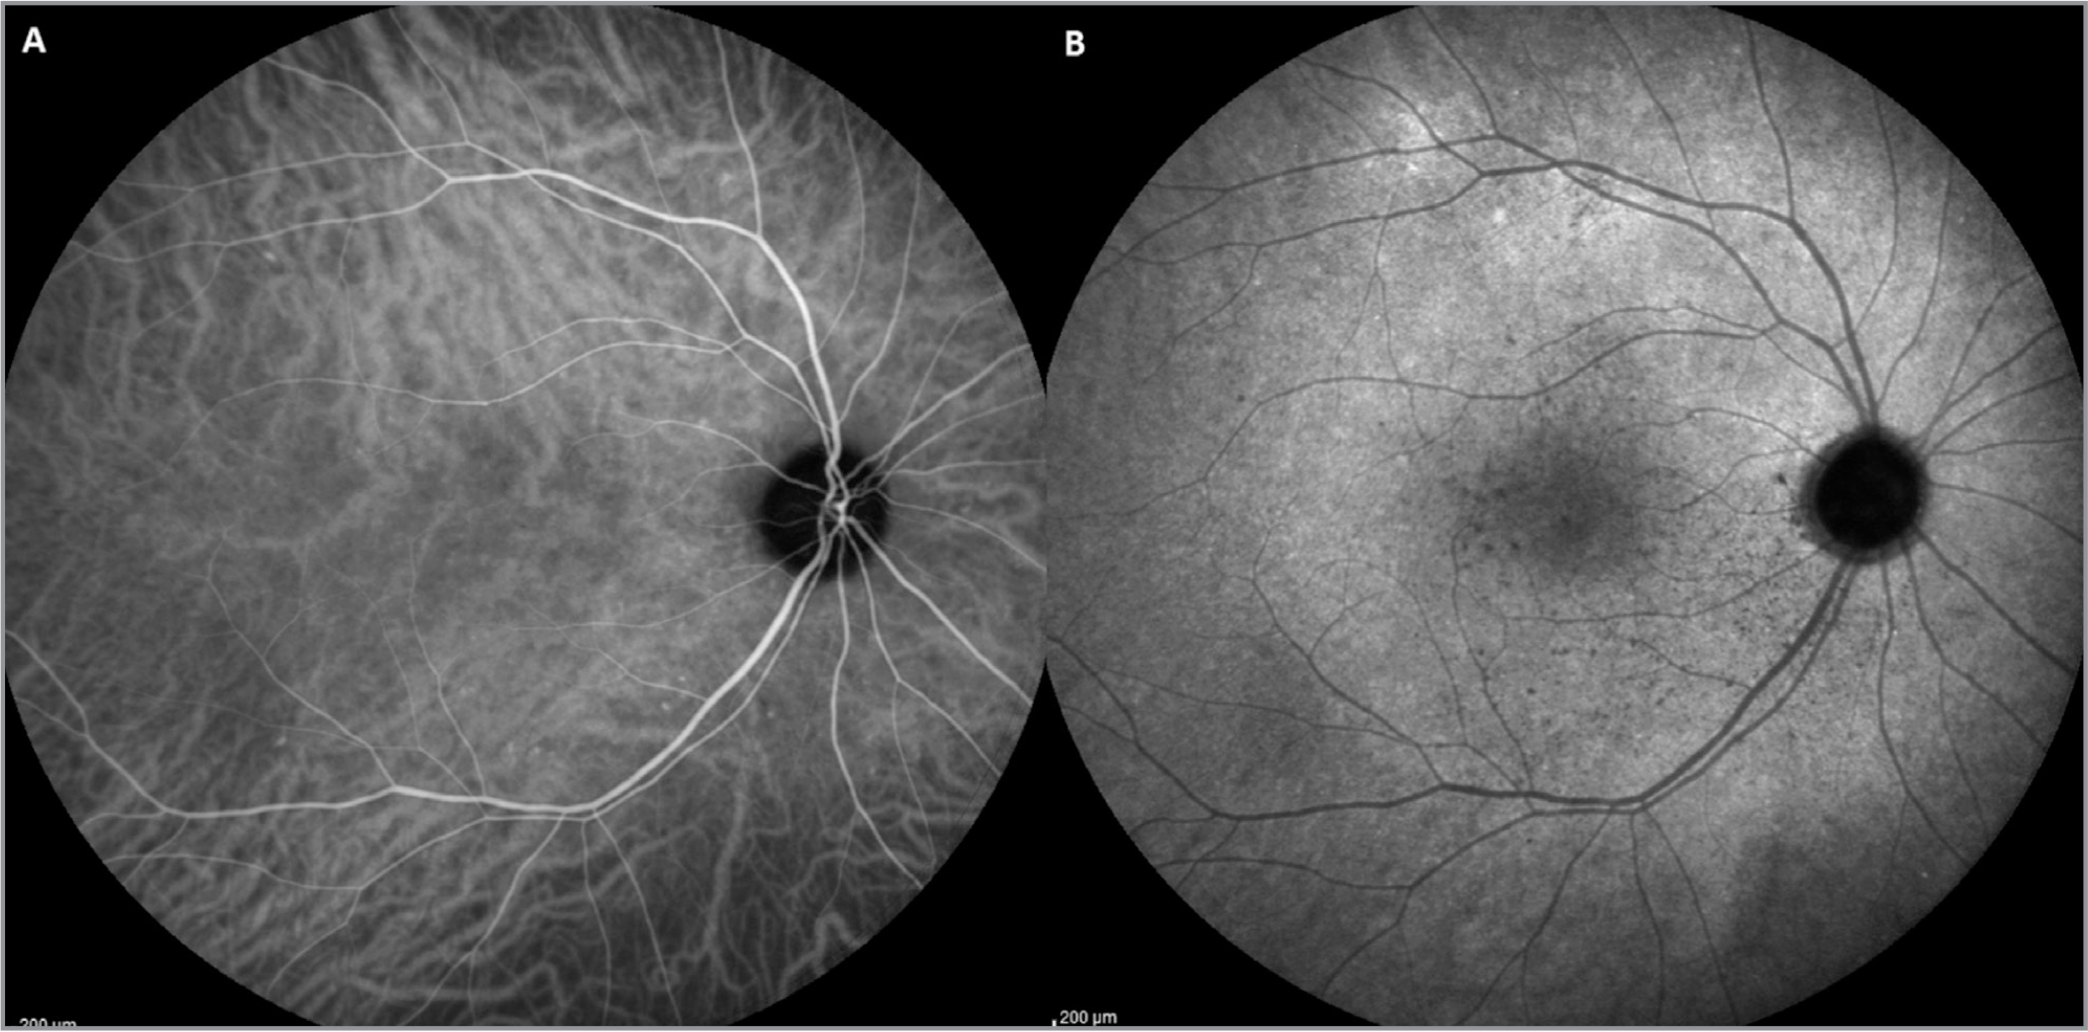 (A, B) Indocyanine green angiography revealing in the early stages of examination the disappearance of hypofluorescent areas (A); the late stages demonstrated a marked decrease of hypofluorescent areas detected 3 months before (B).